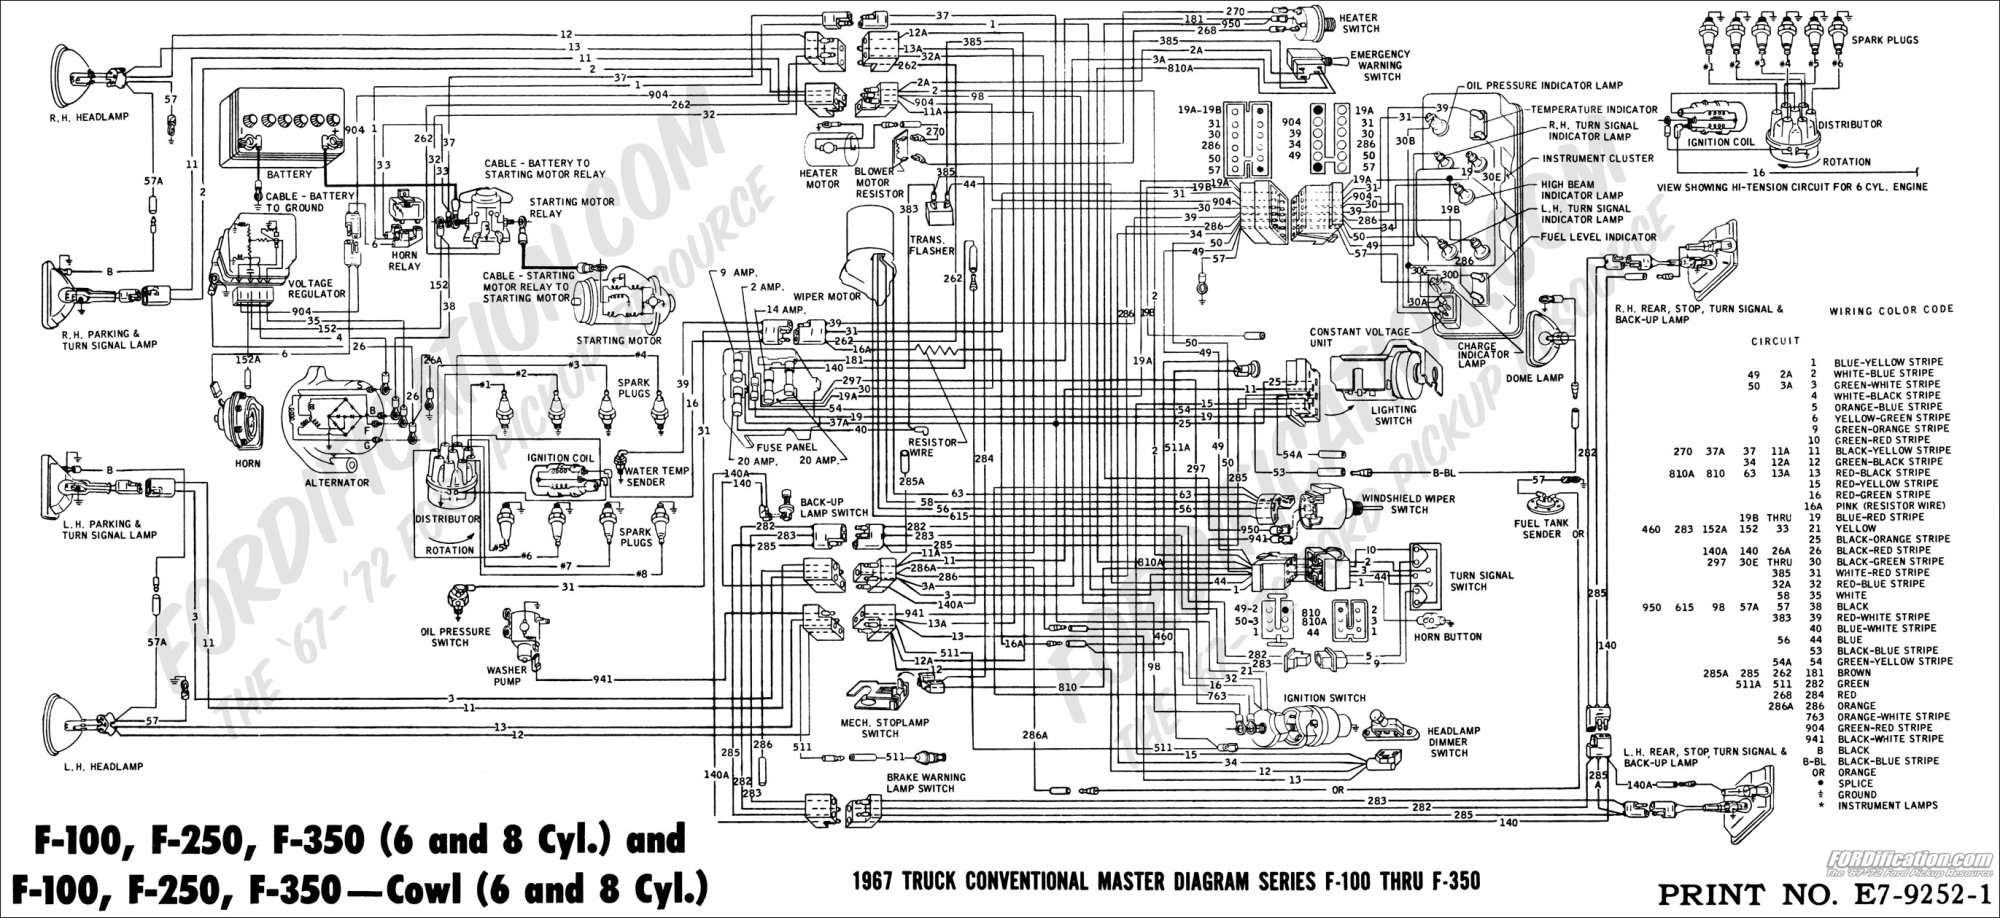 hight resolution of 2003 ford e350 starter wiring schematics wiring diagrams u2022 rh parntesis co 2002 ford f